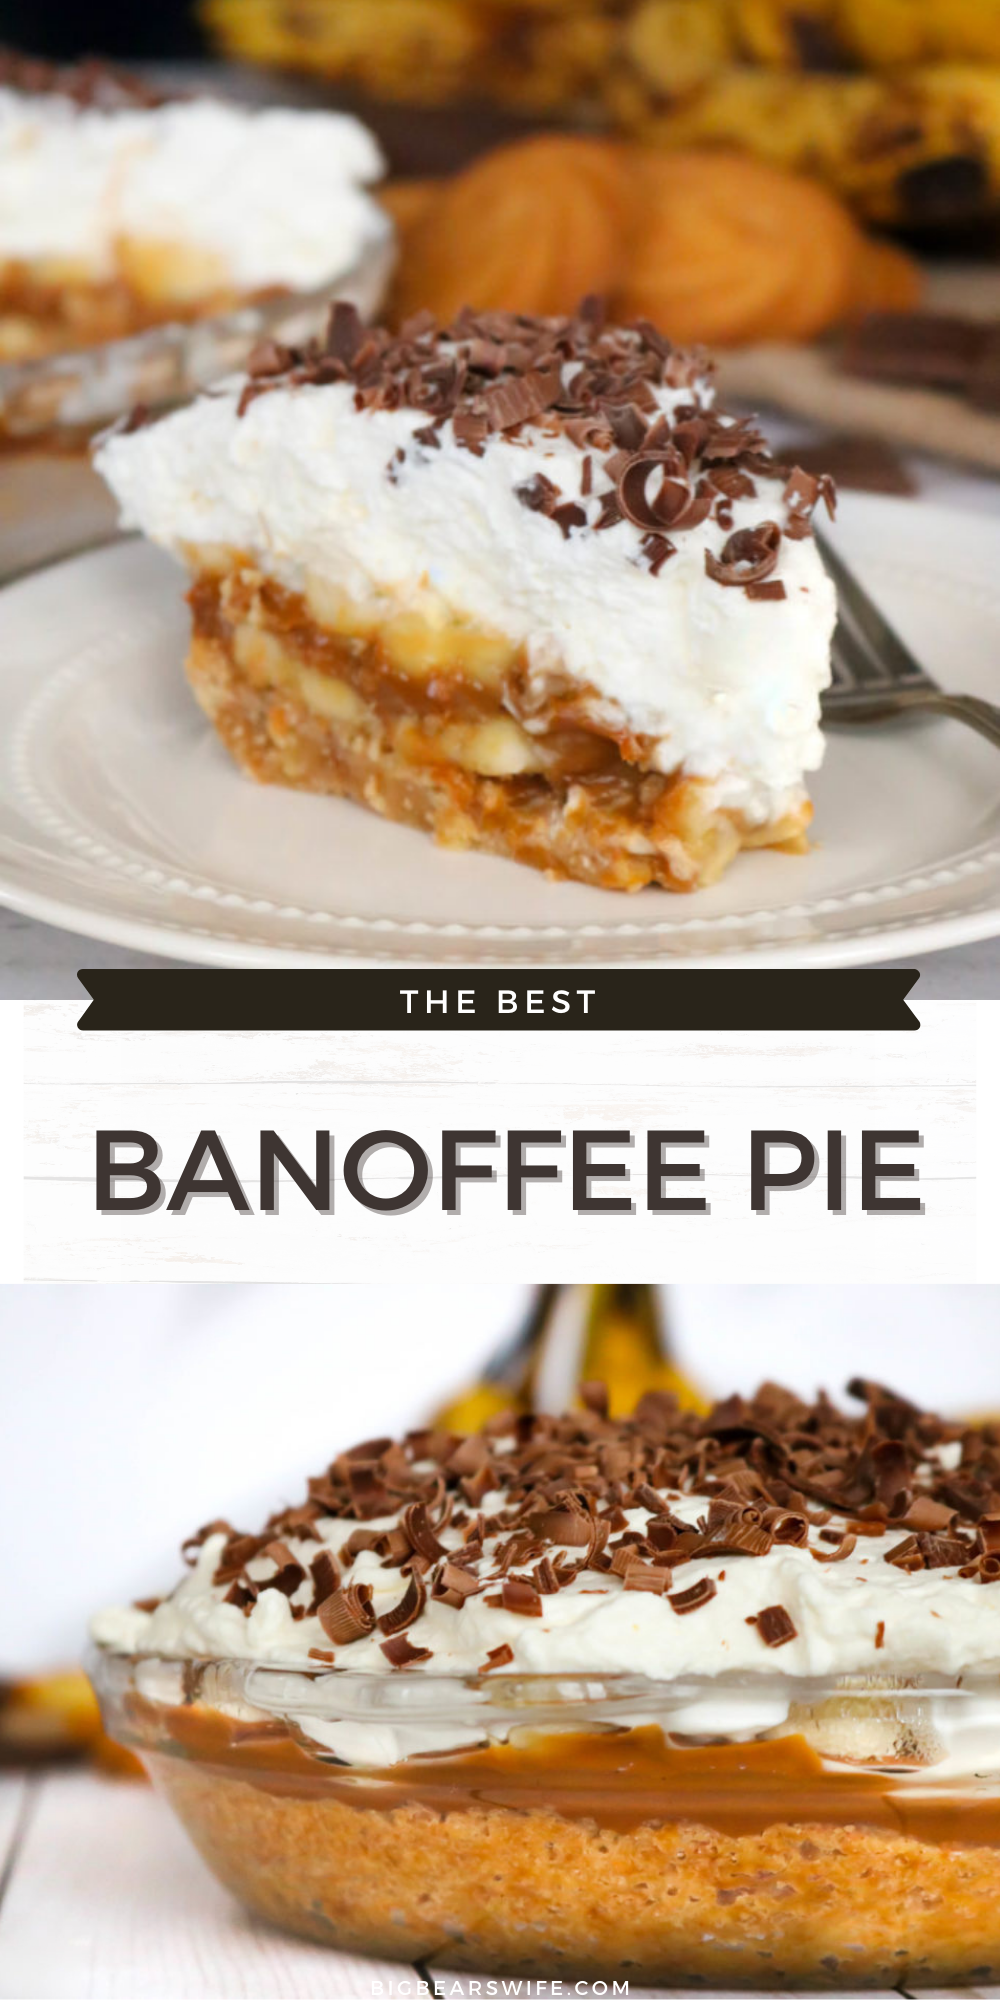 Banoffee Pie is a delicious dessert that combines a double layer of fresh, ripe bananas, dulce de leche and homemade whipped cream that is sure to make any banana and caramel lover go crazy! 